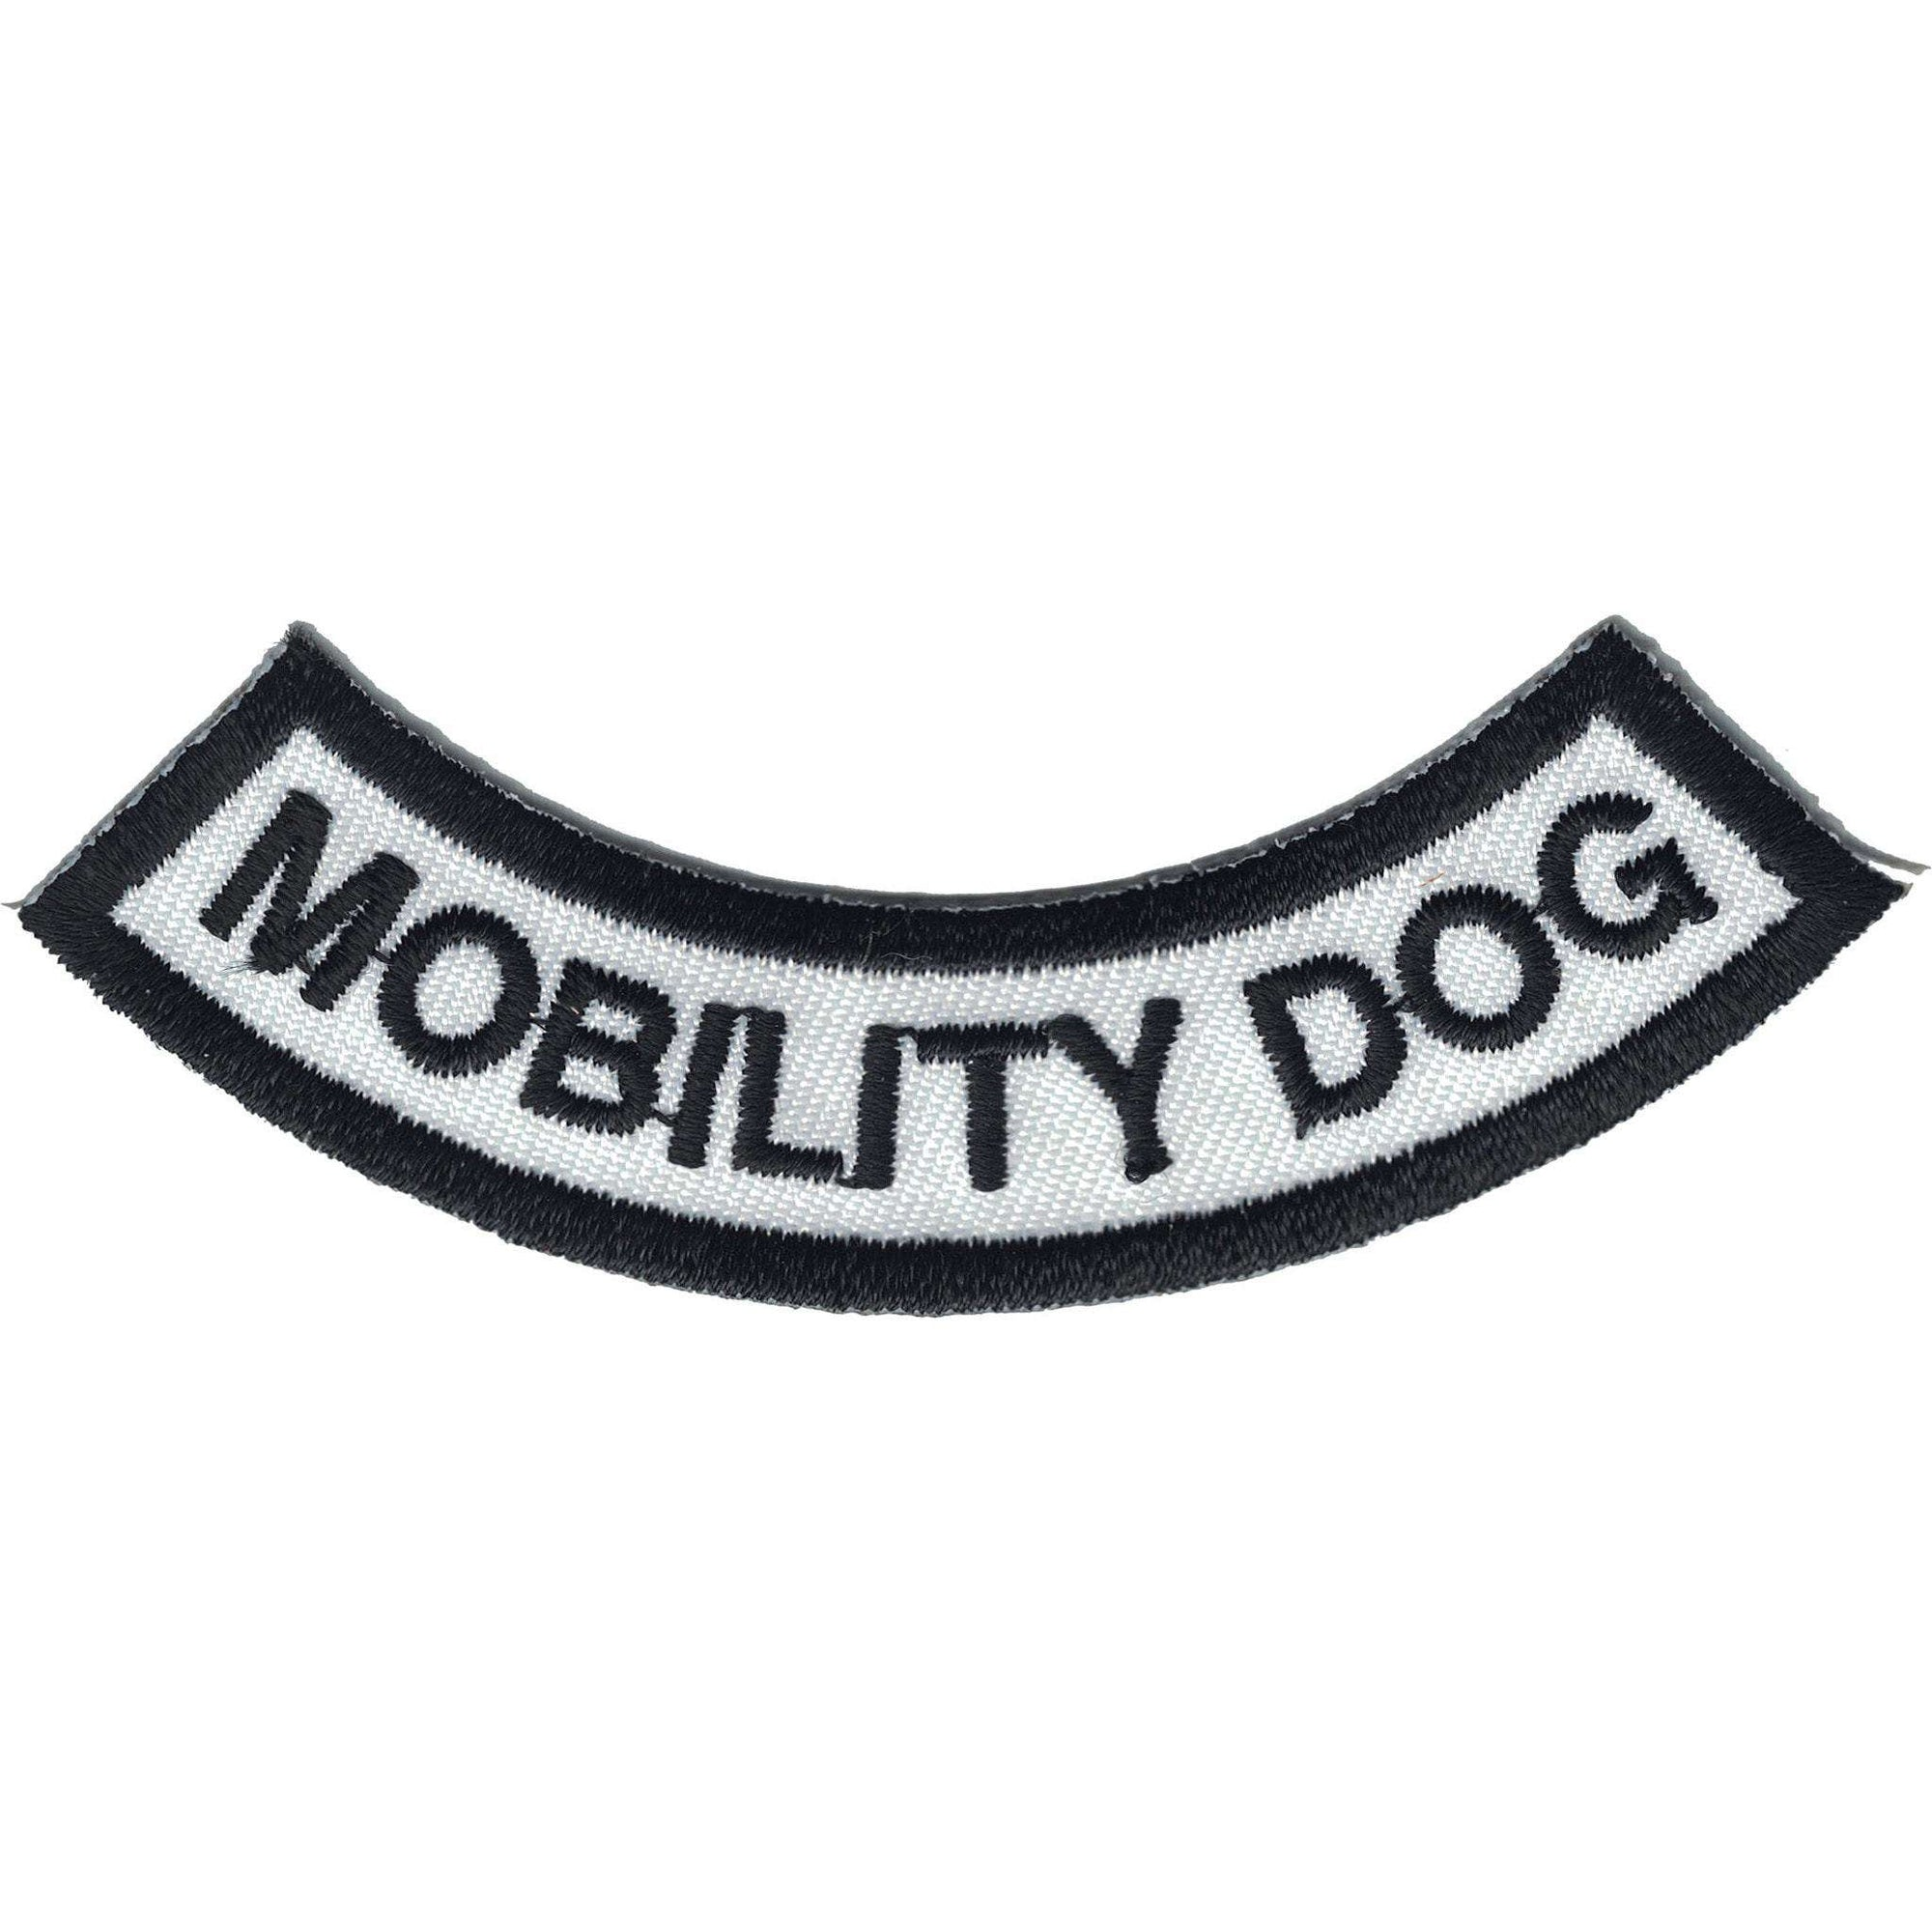 Patch, Mobility Dog - SitStay